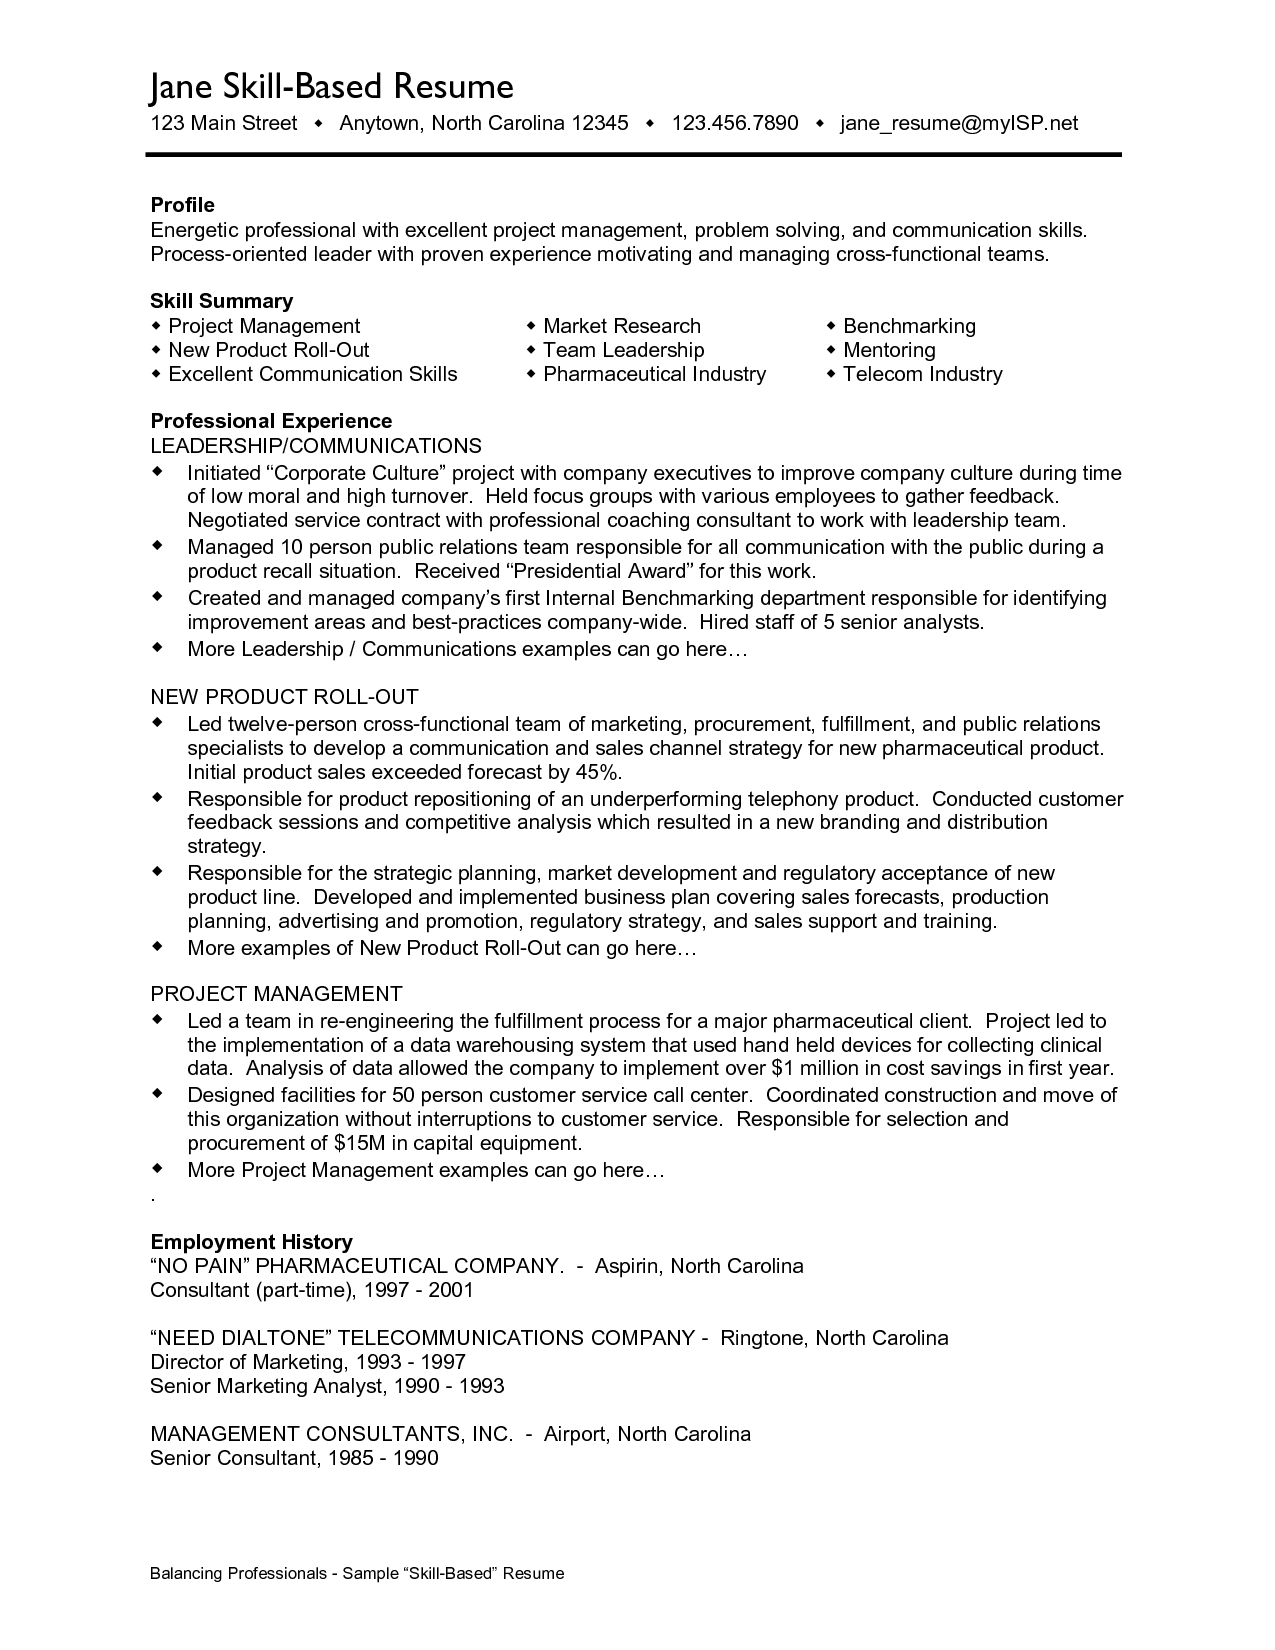 Sample Resume Language Skills Job Resume Communication Skills Http Resumecareer